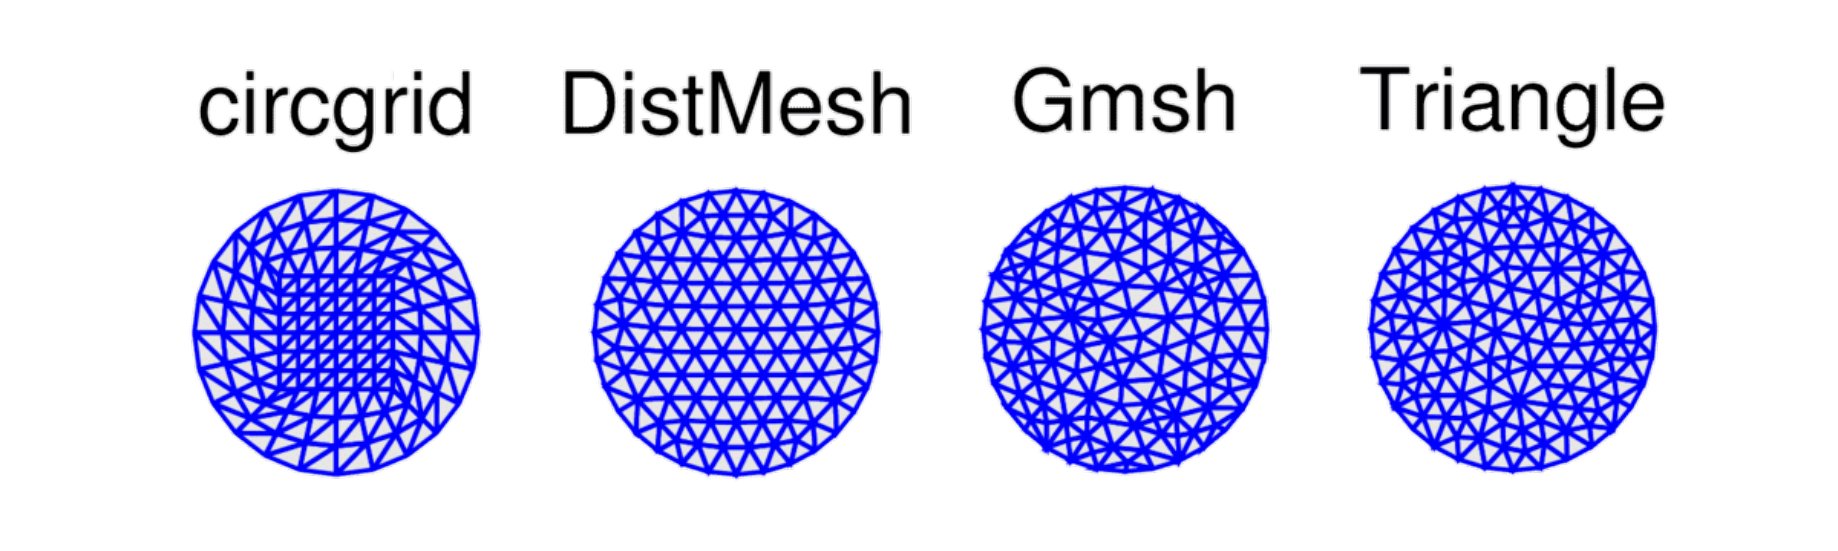 Comparison of the DistMesh, Gmsh, and Triangle Mesh Generators in MATLAB